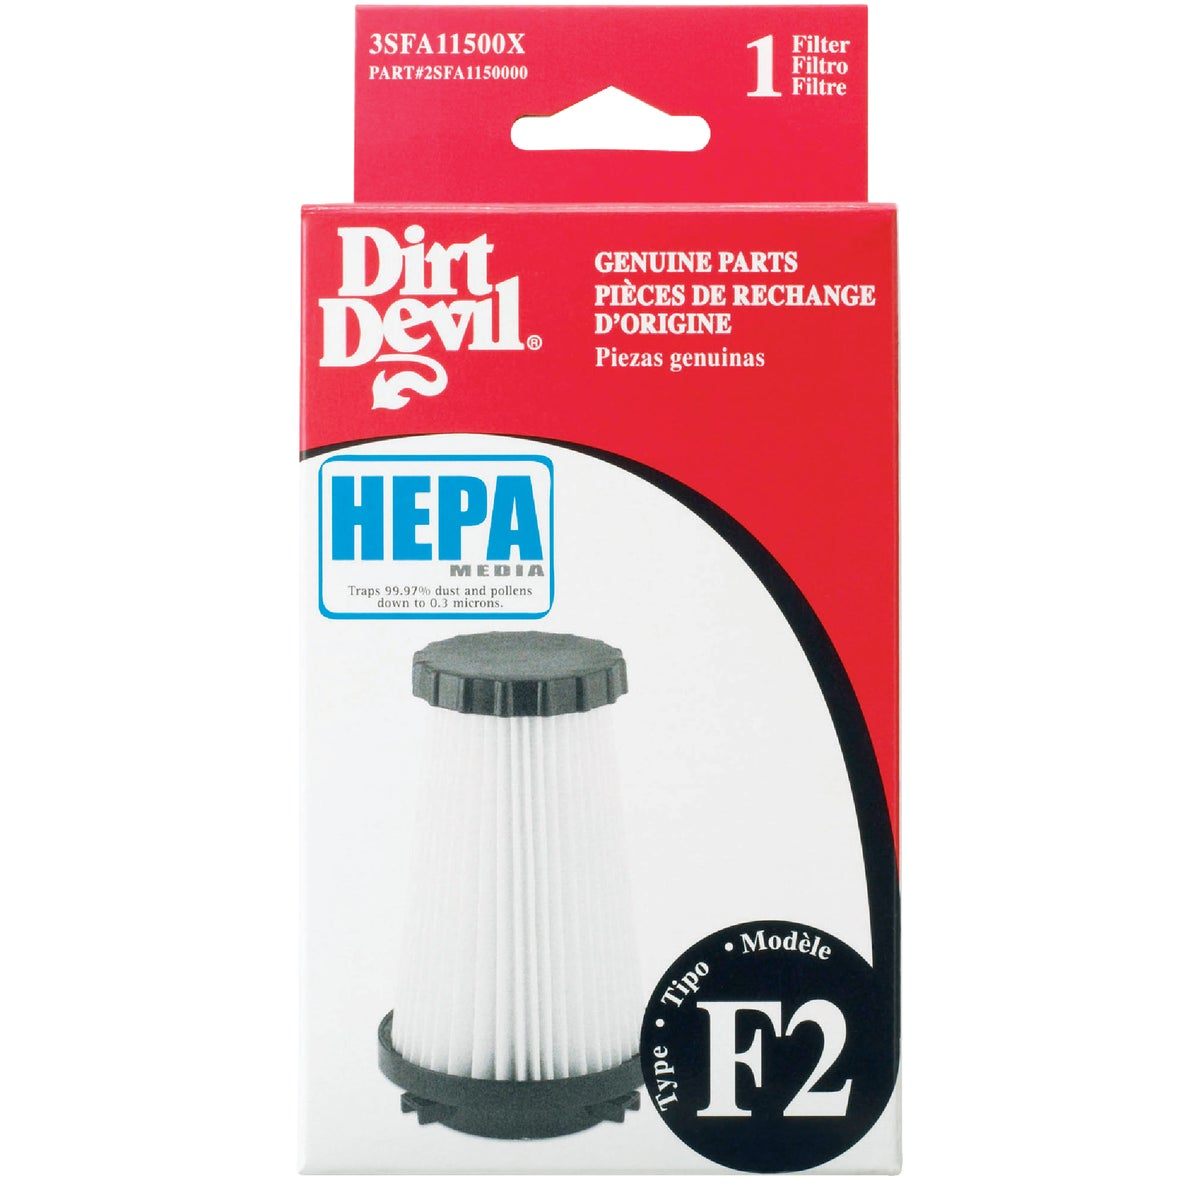 F2 HEPA FILTER - 3-SFA115-00X by Royal Appliance